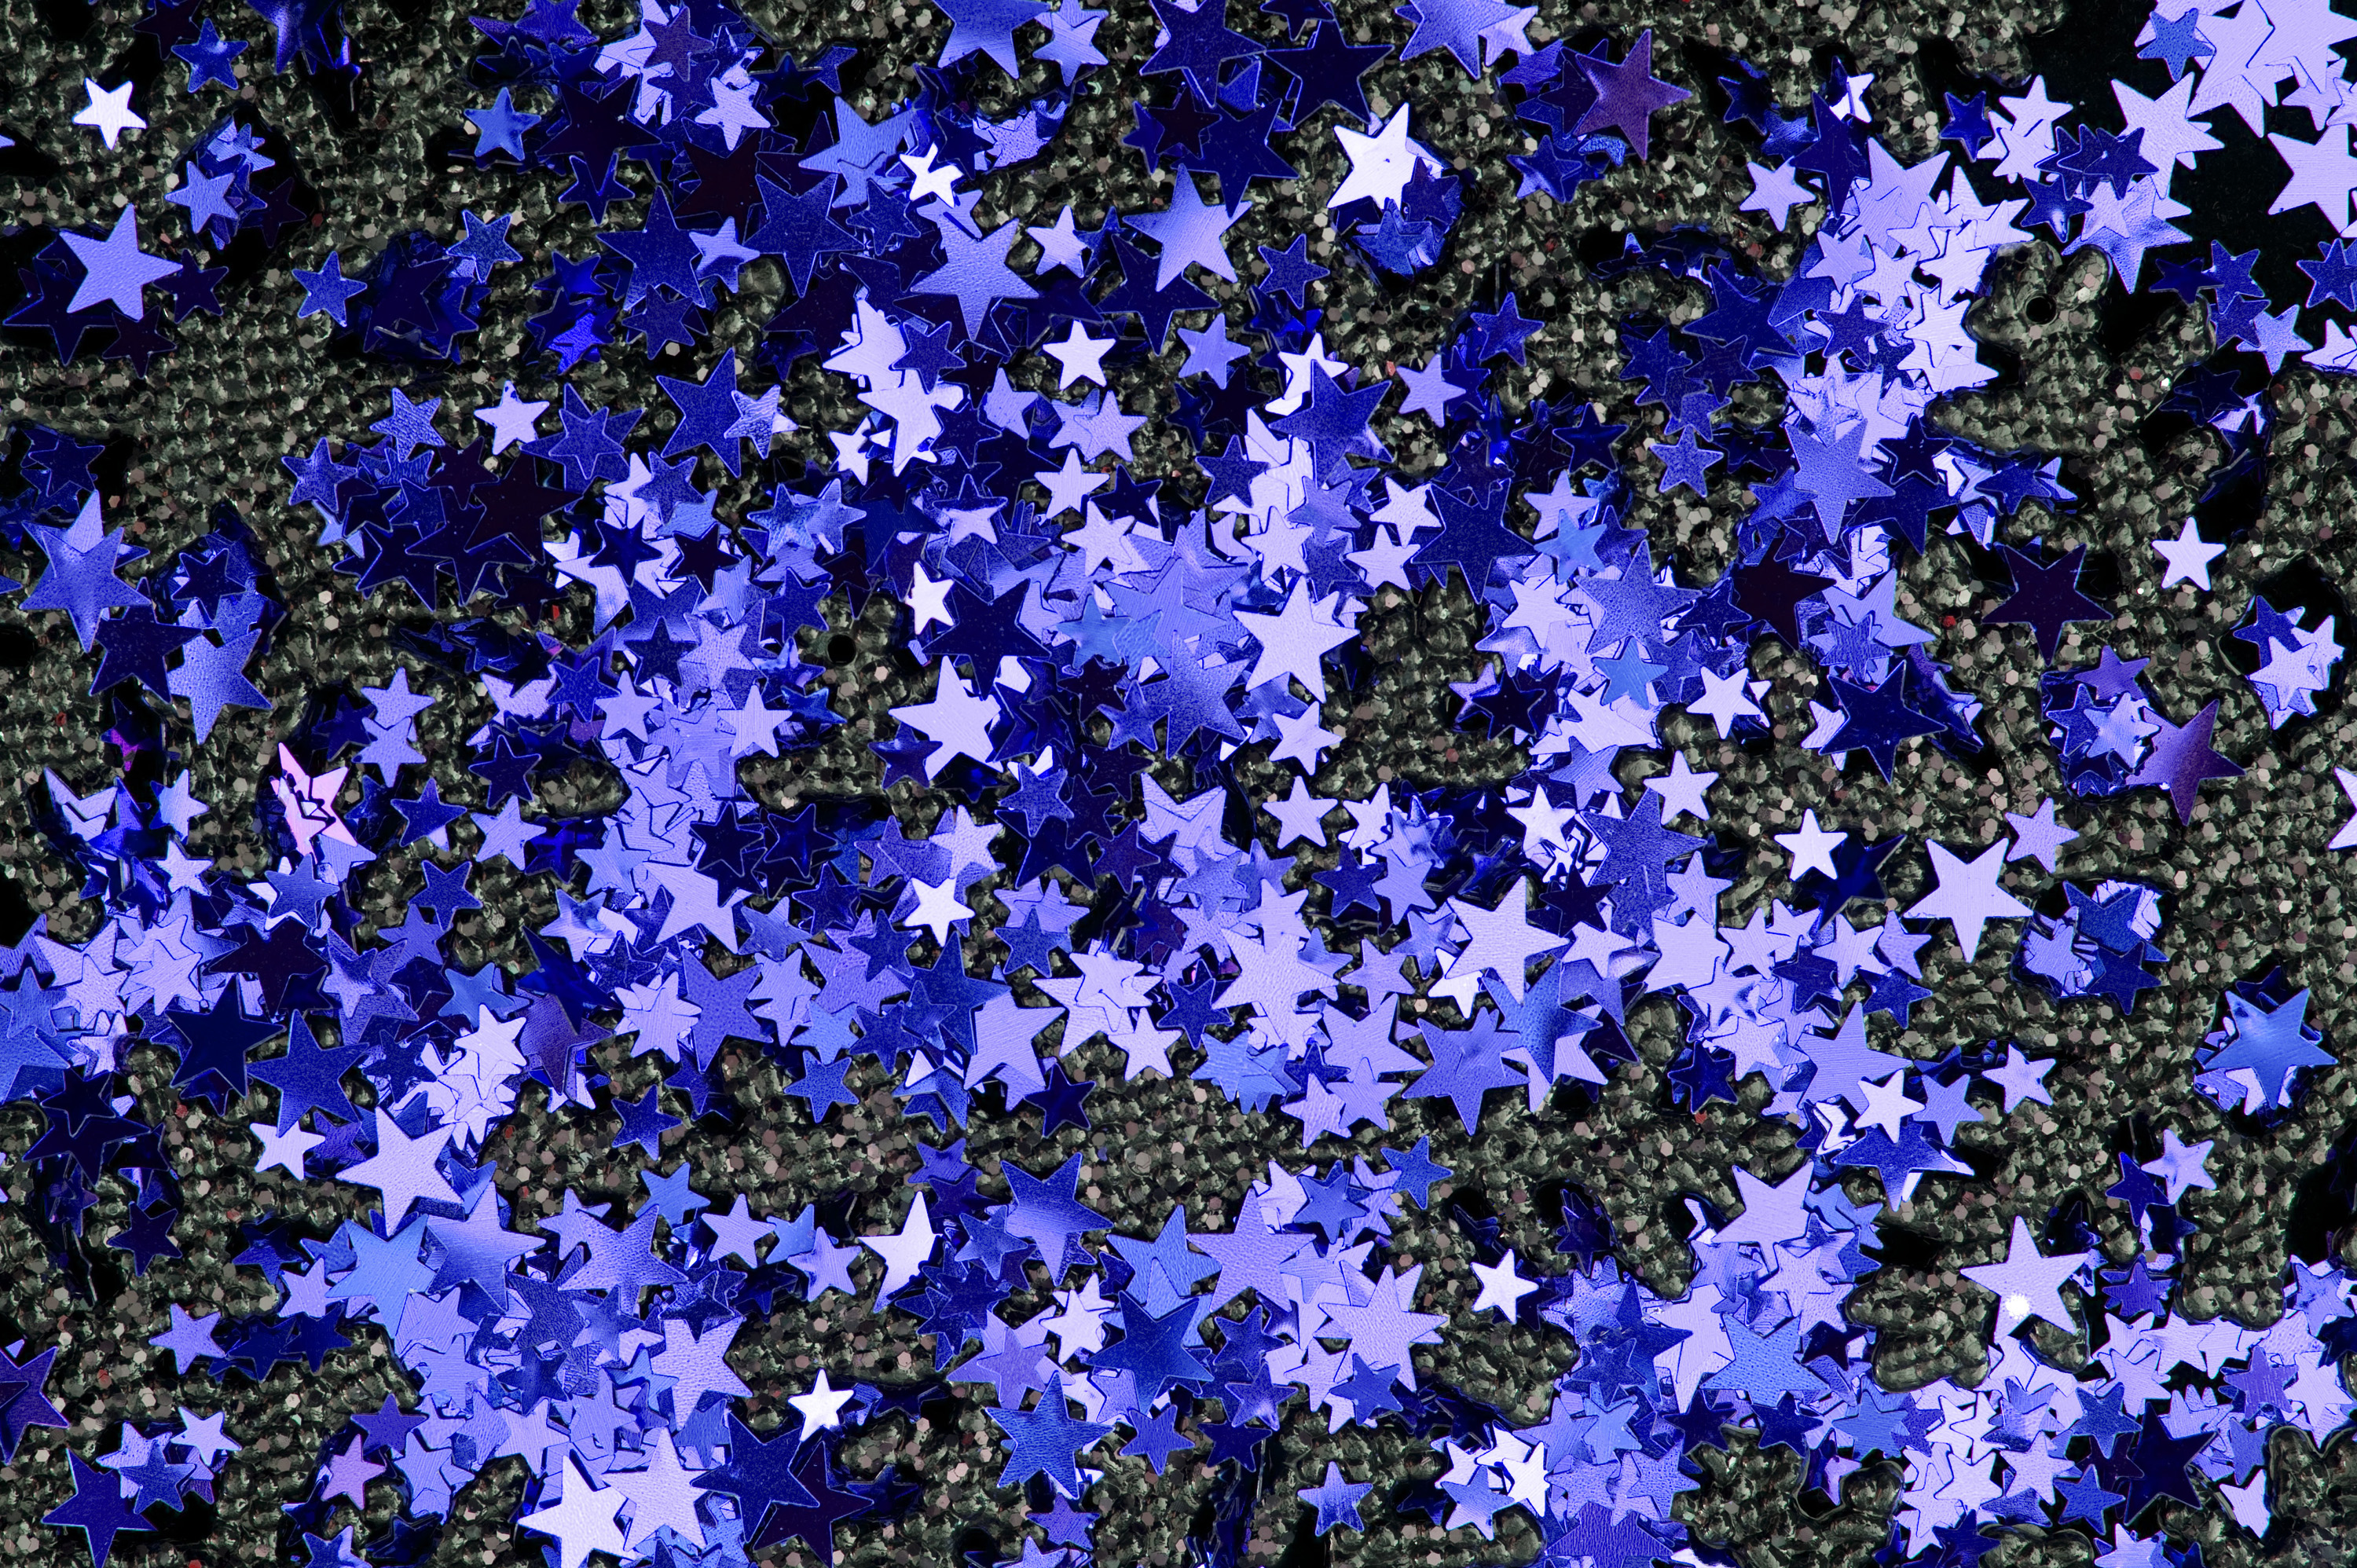 a background of blue metallic star shapes